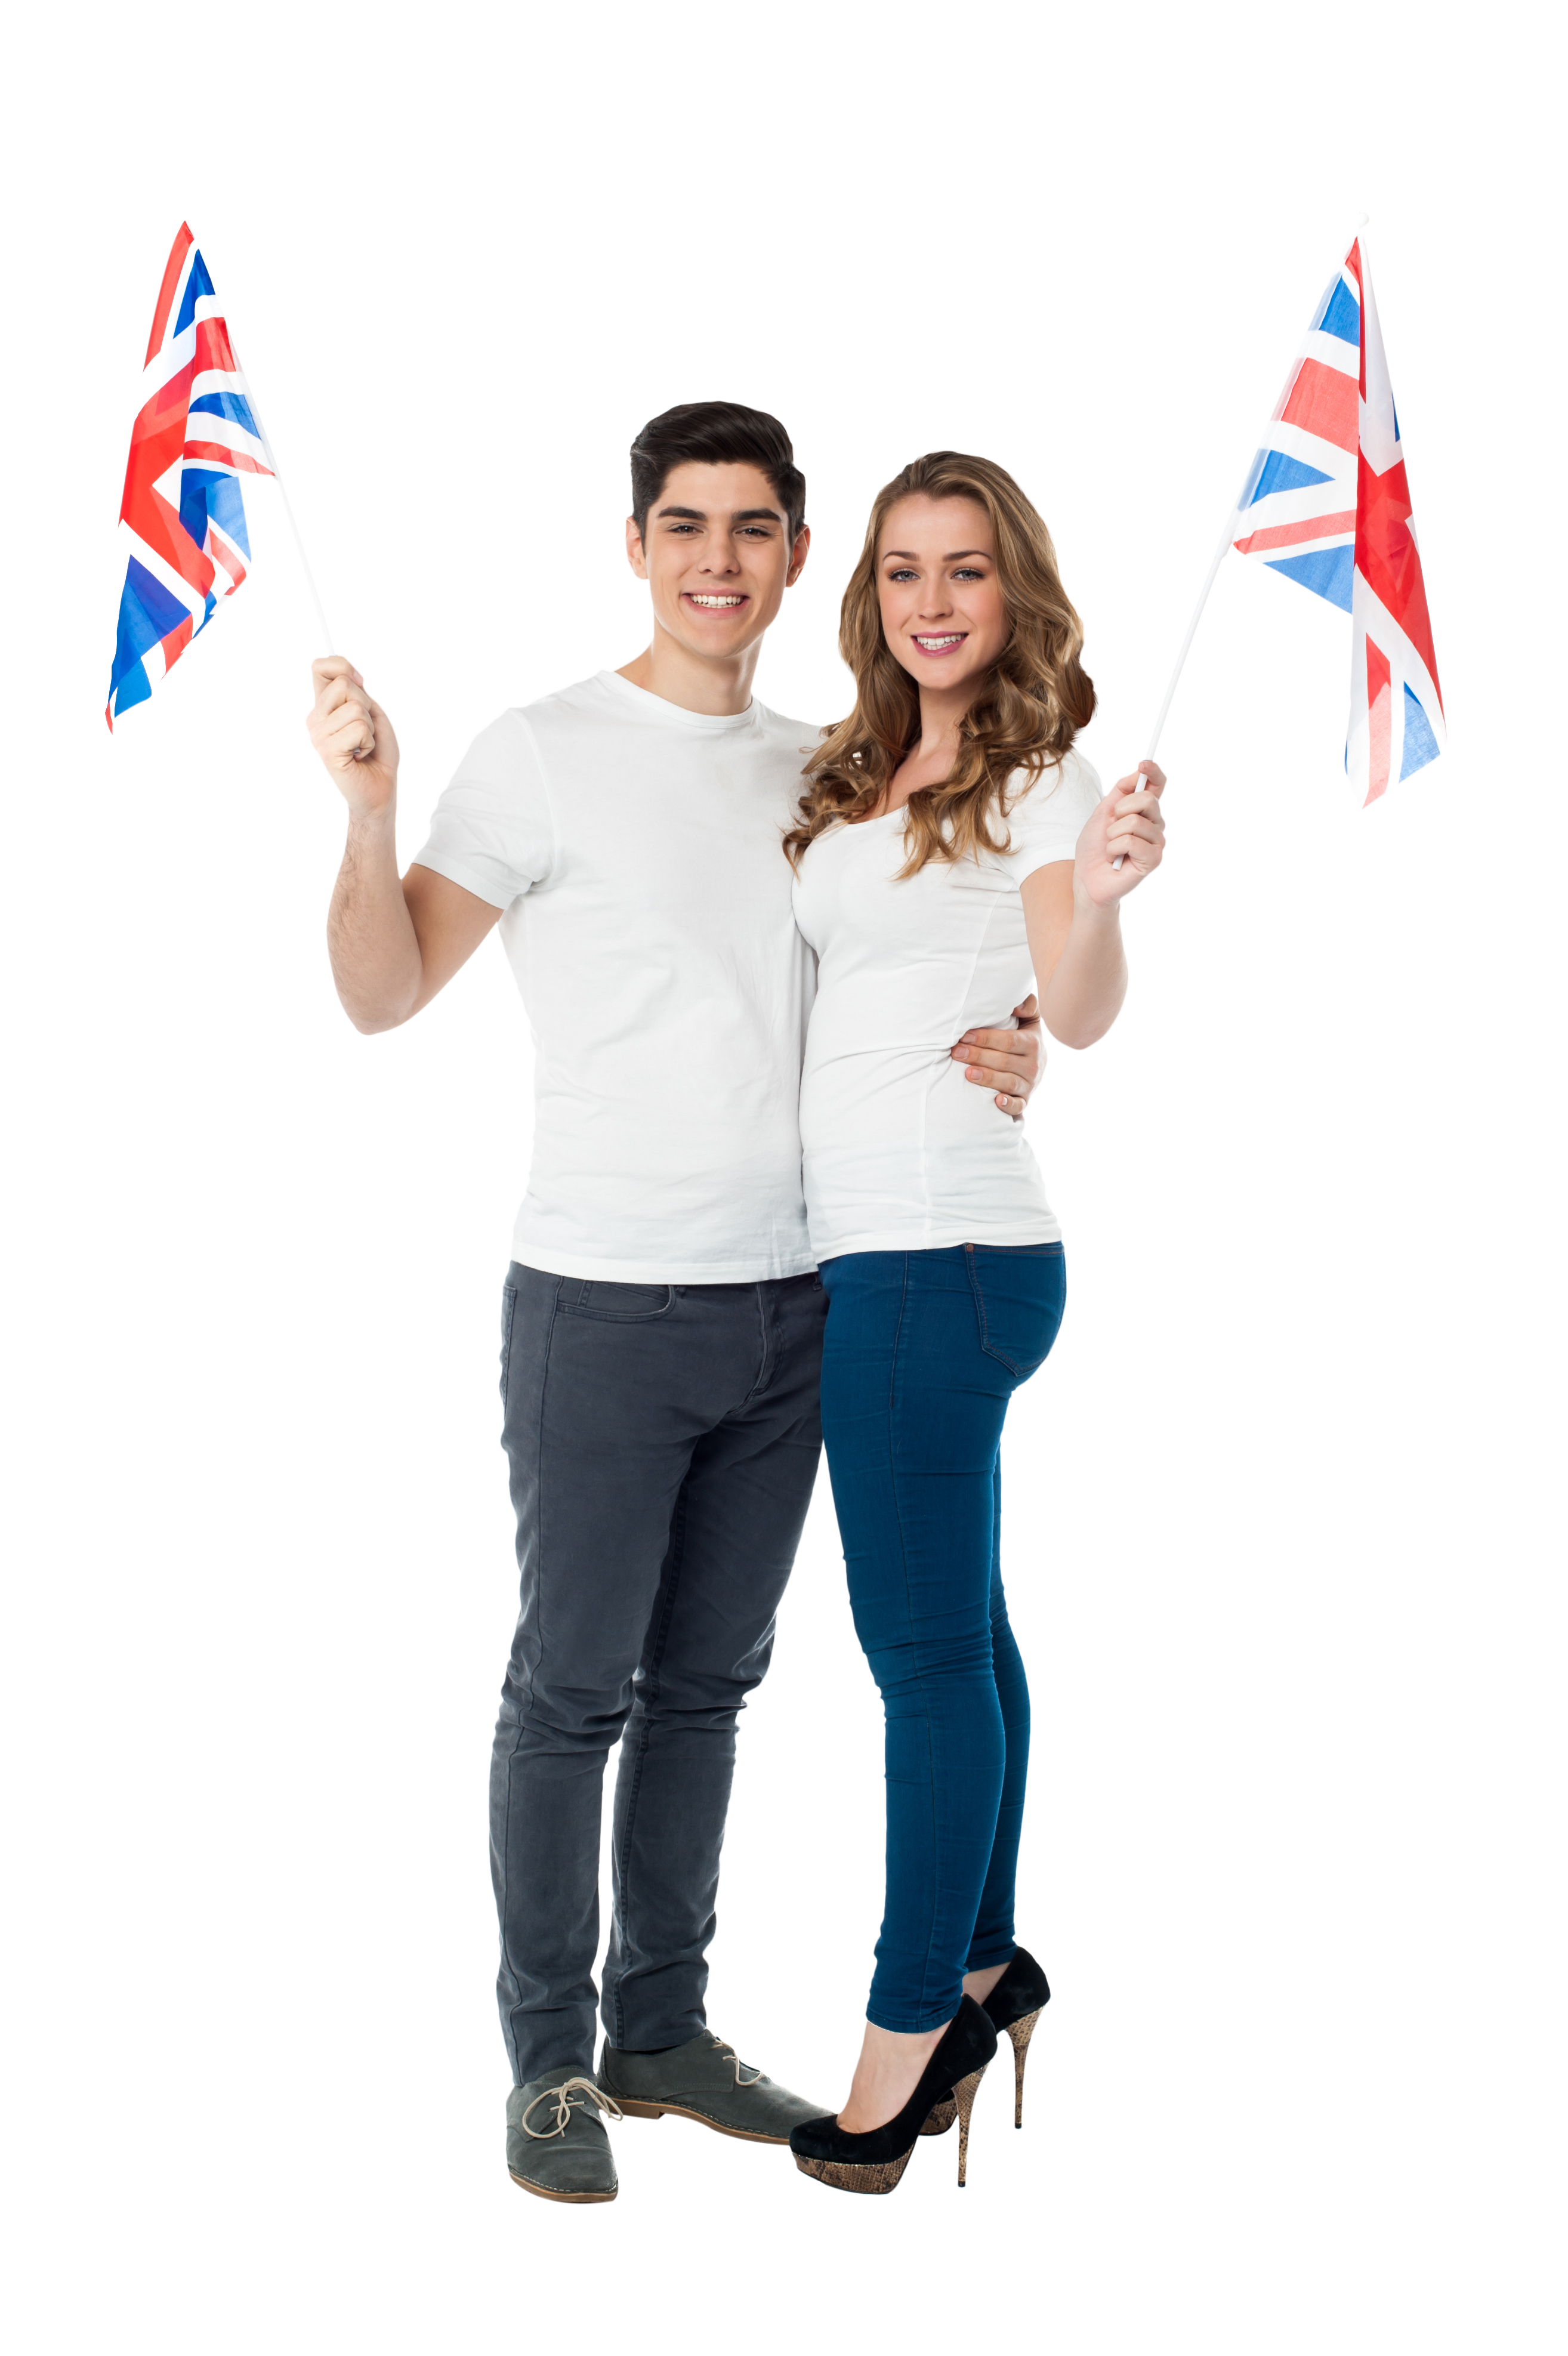 Young couple png. Hd transparent images pluspng